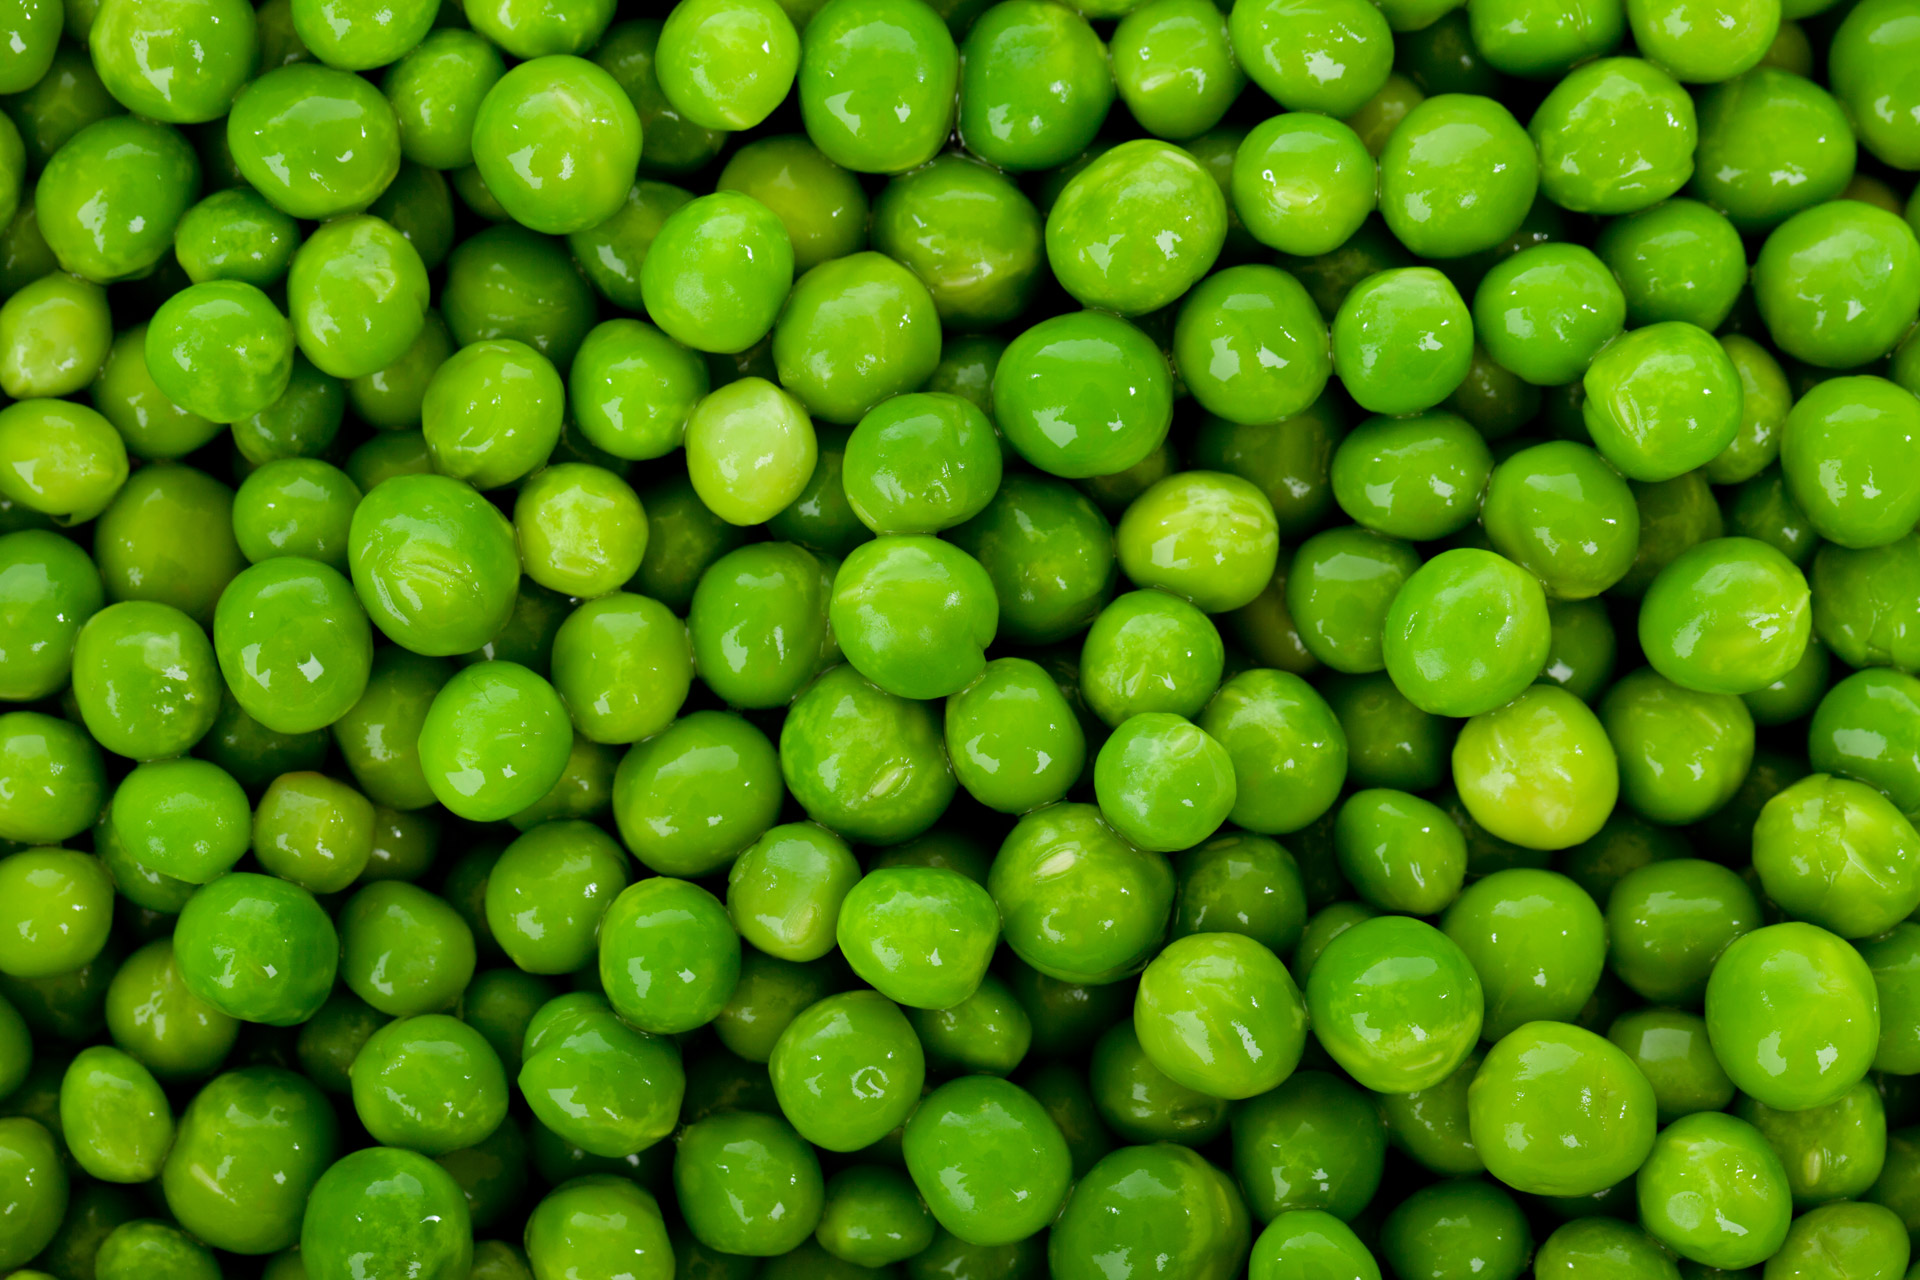 green-peas-background